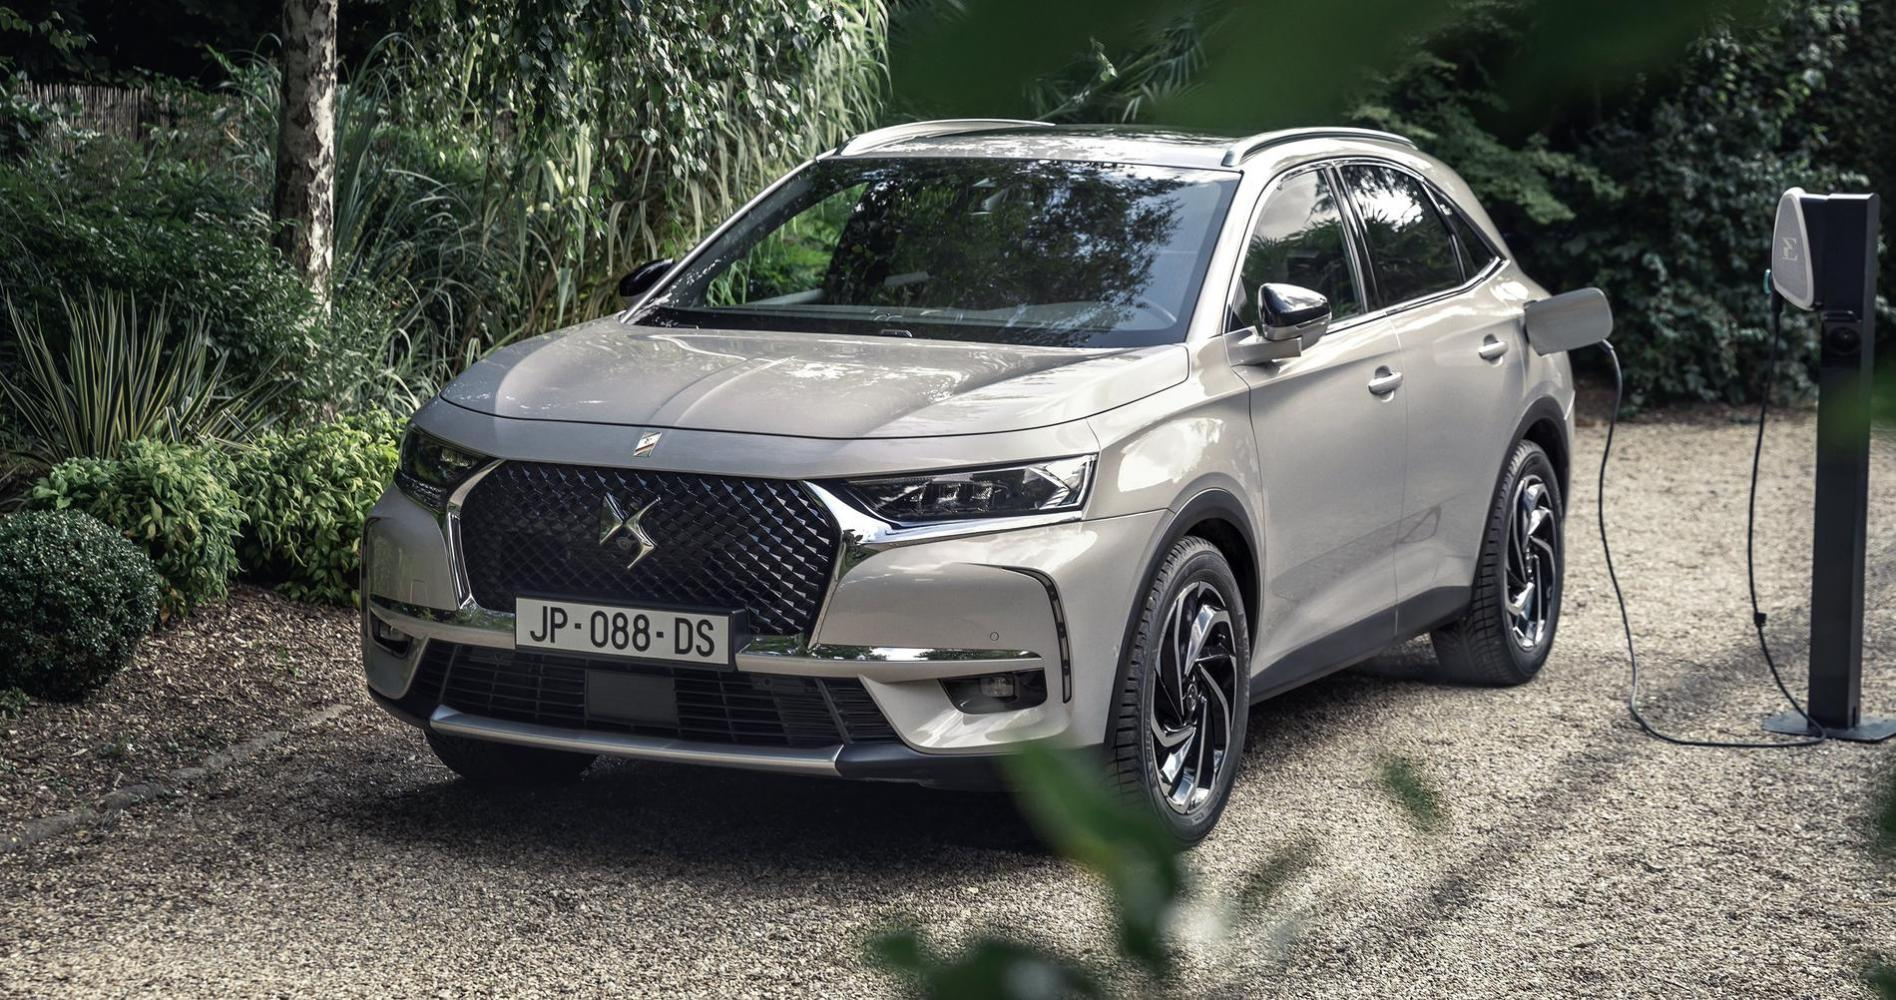 ds 7 crossback e tense 4x4 3